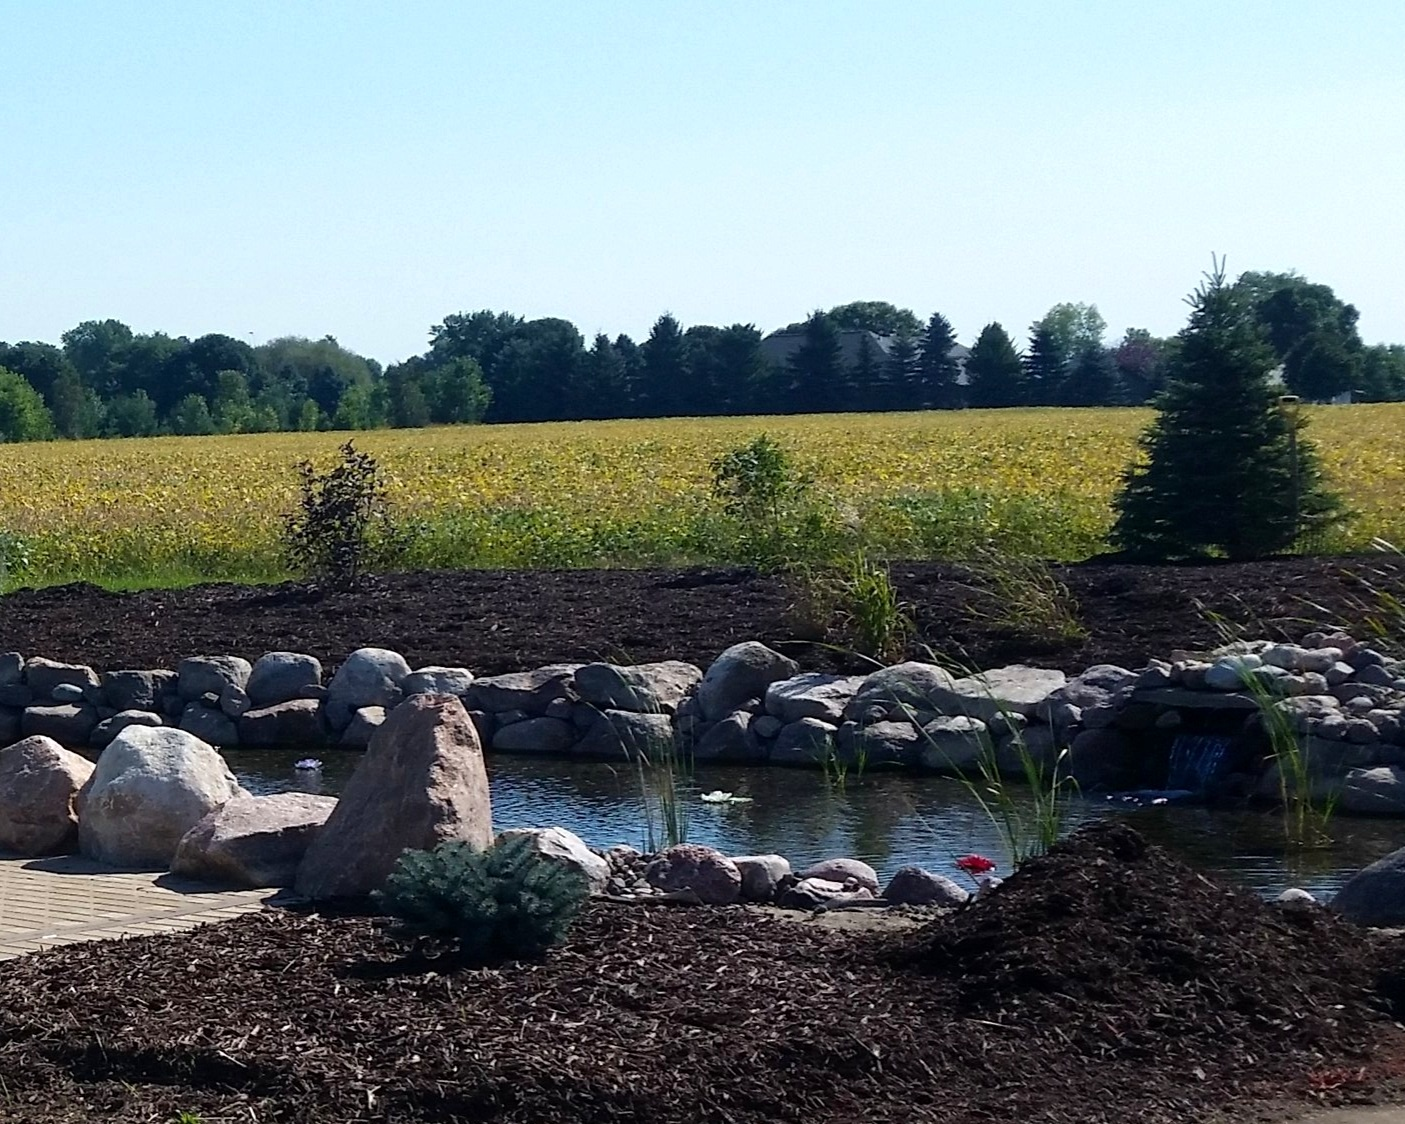 Landscape Installation - Looking to create your outdoor oasis? Plantings, water features, lighting, patios, retaining walls, and much more. Contact D & D Excavating & Landscape Service, Inc. today!